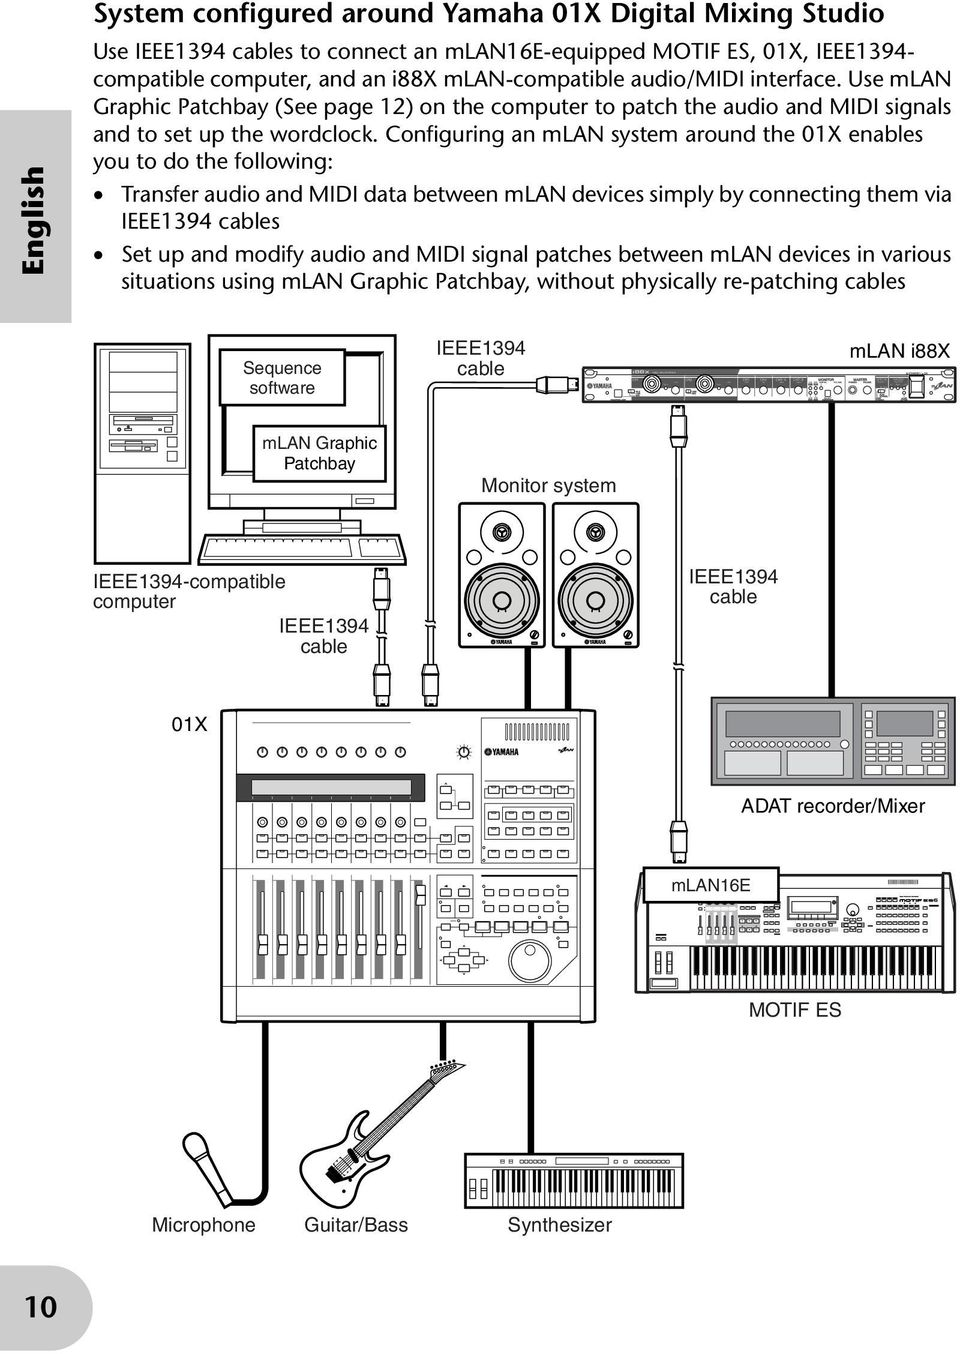 Configuring an mlan system around the 01X enables you to do the following: Transfer audio and MIDI data between mlan devices simply by connecting them via IEEE1394 cables Set up and modify audio and